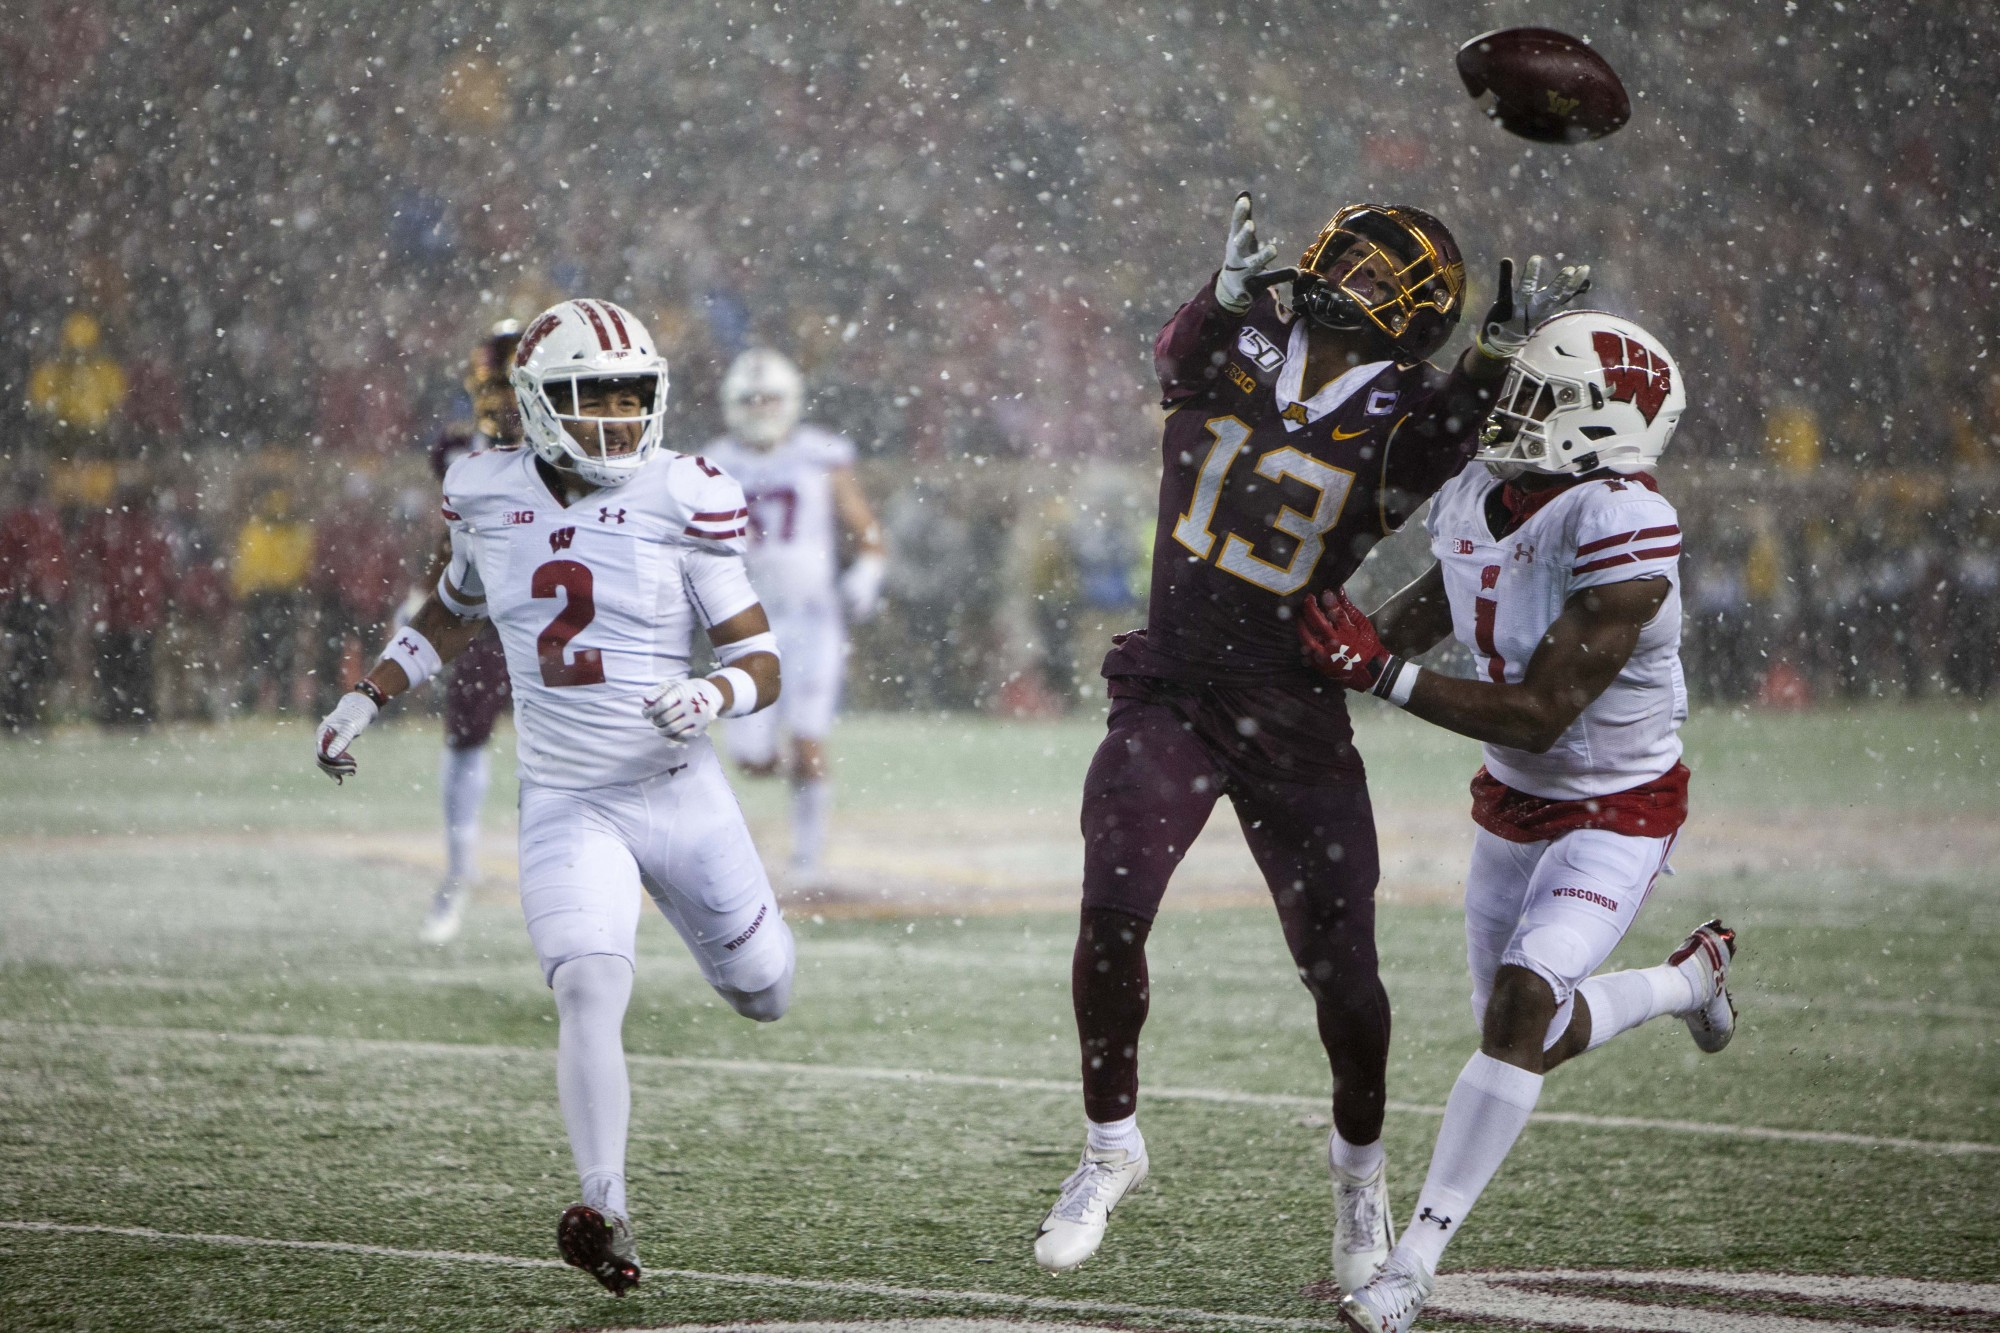 Wide receiver Rashod Bateman misses a pass during the Gopher game against the Badgers at TCF Bank Stadium on Saturday, Nov. 30.